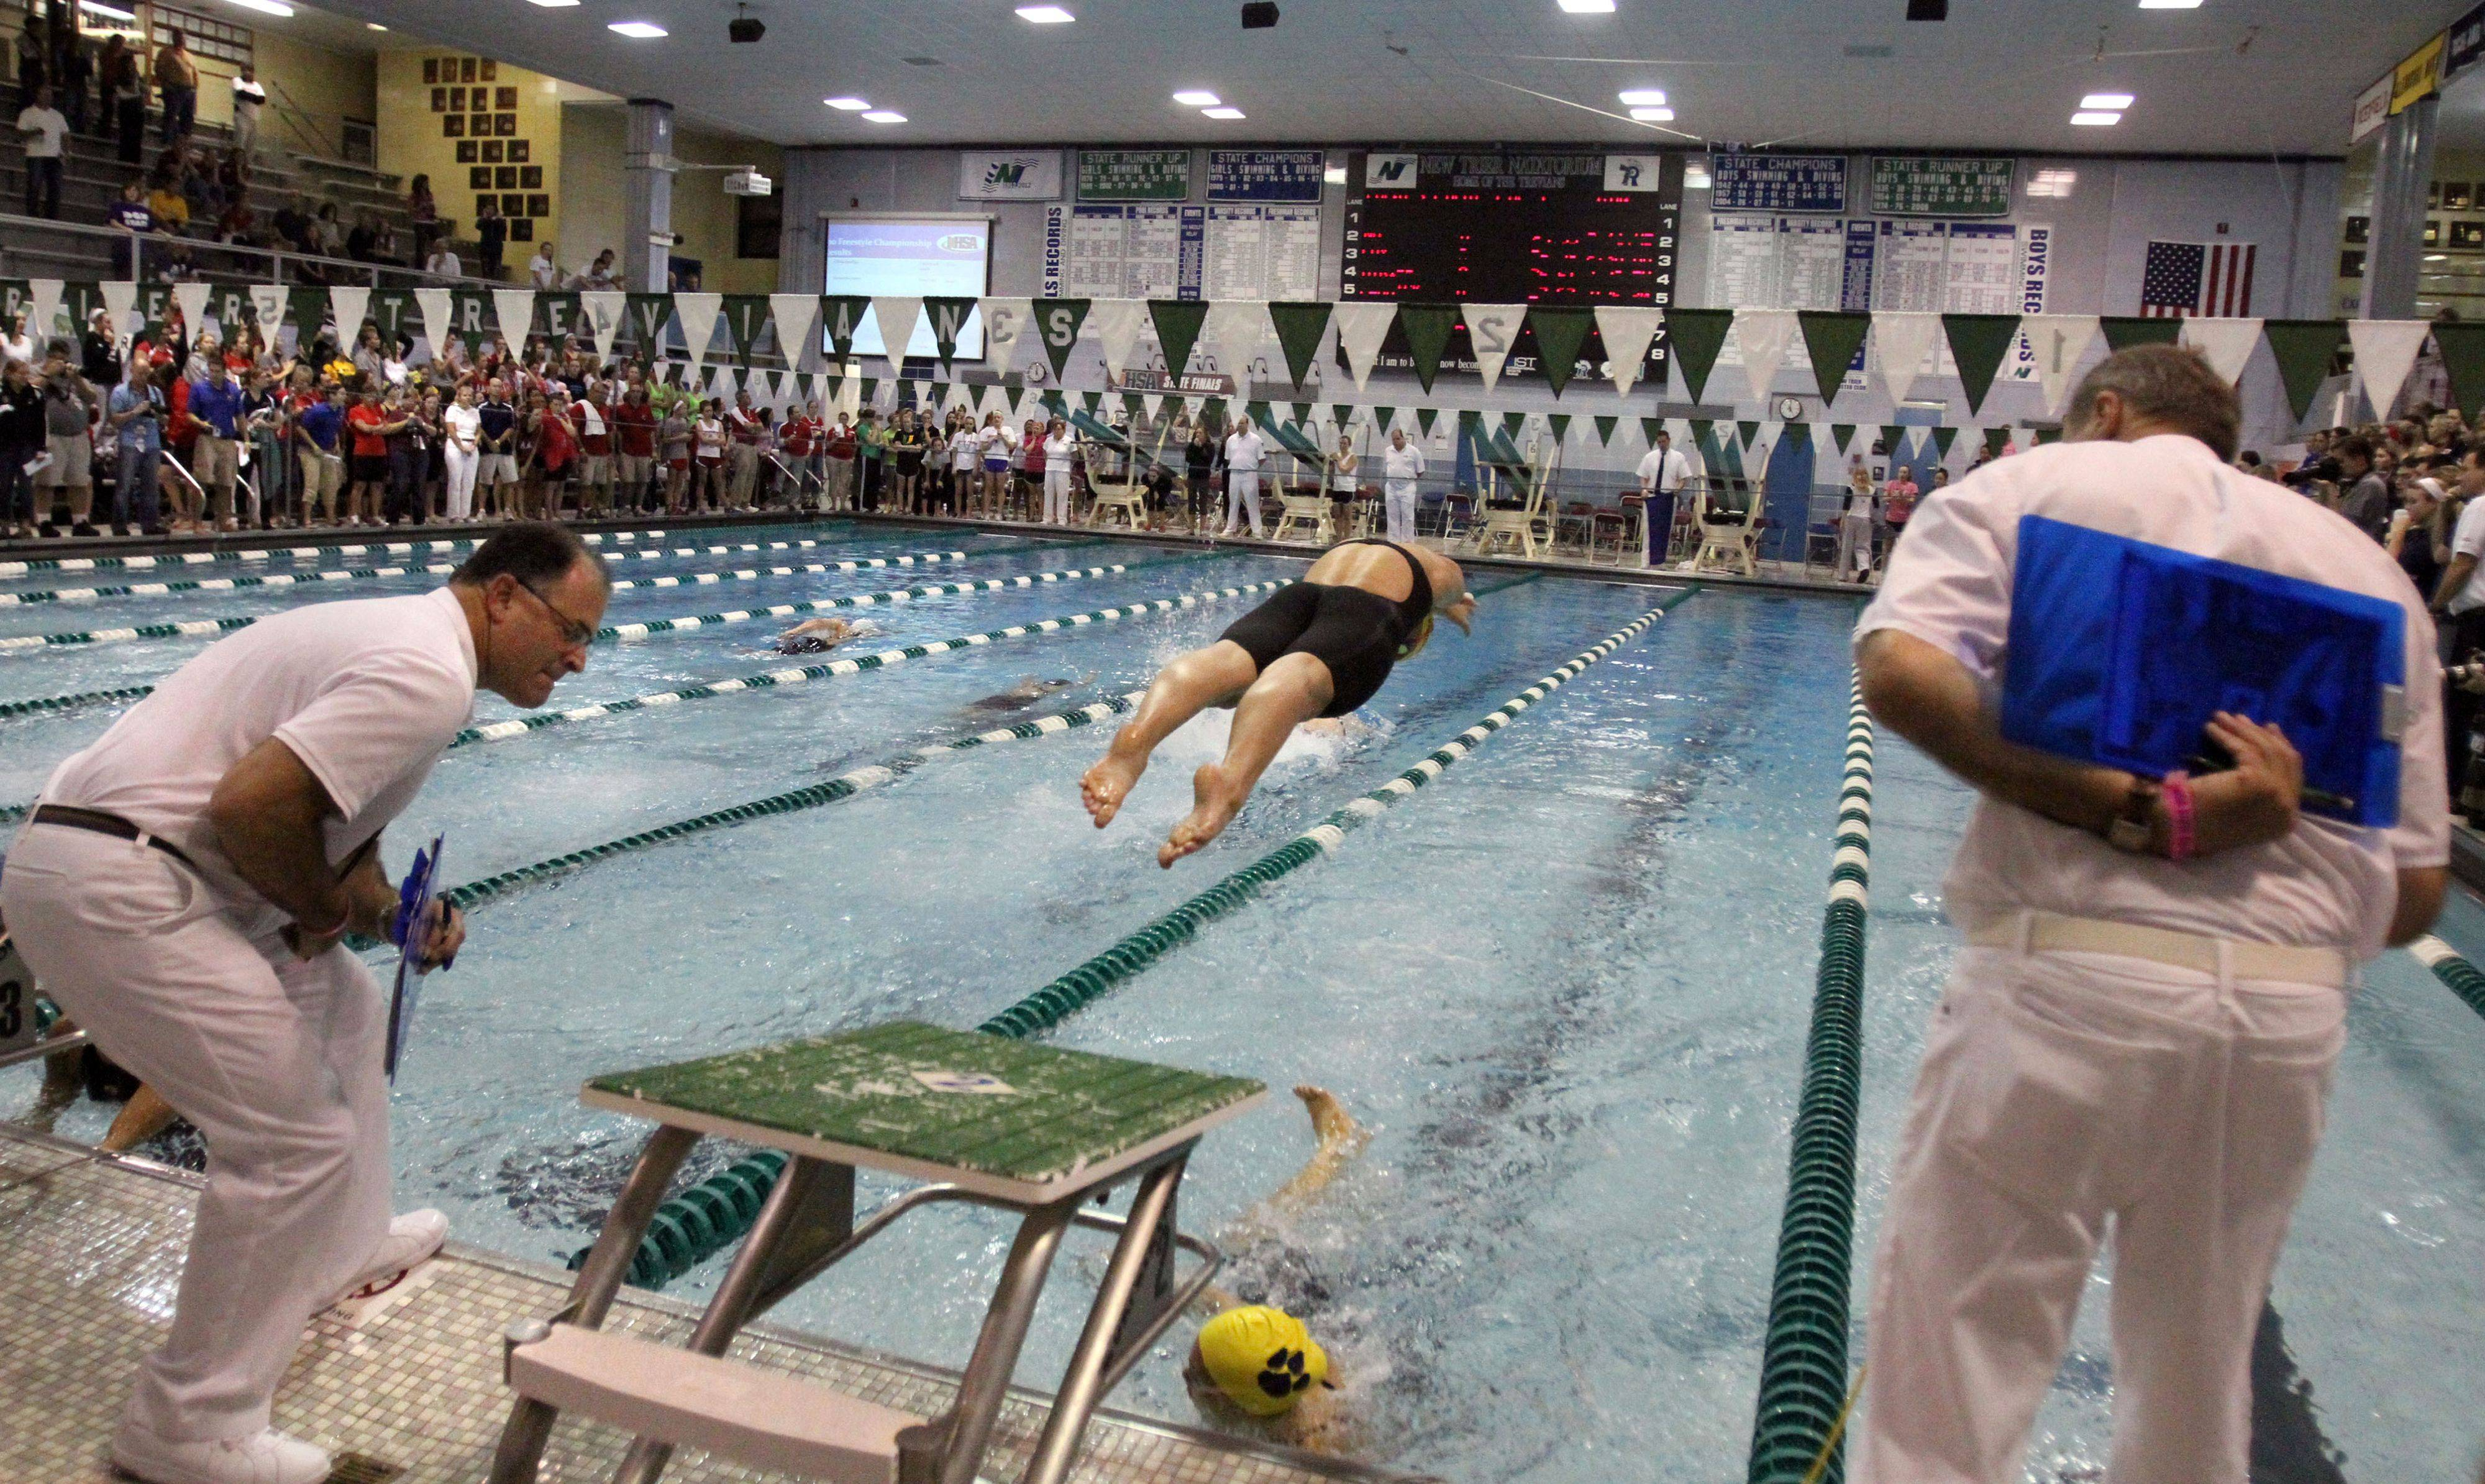 Neuqua Valley relay team competes in the 400-yard freestyle relay at IHSA state championships in Winnetka on Saturday, November 19th.